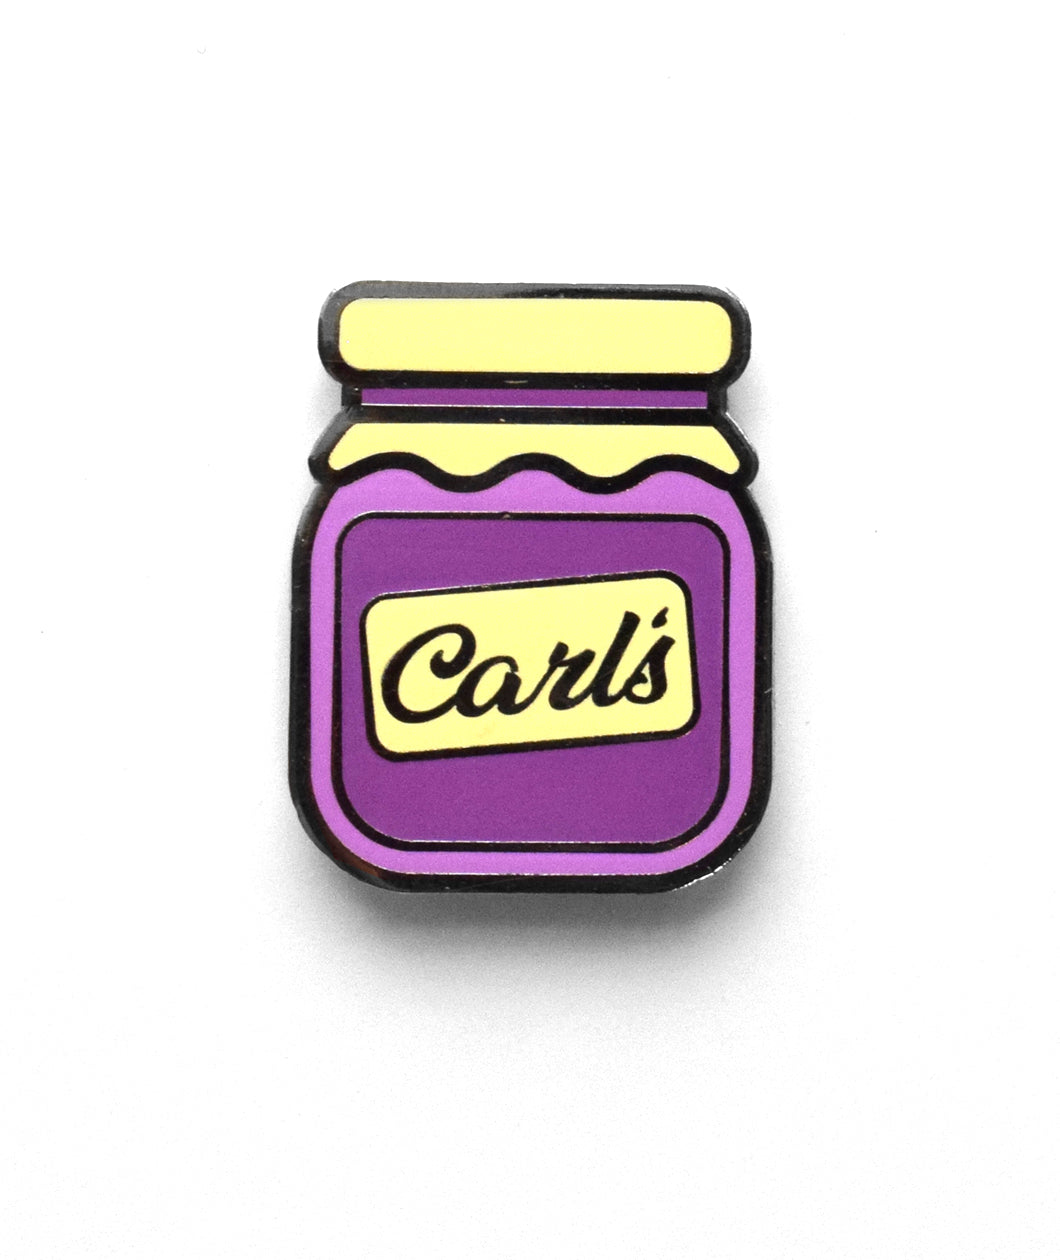 Carl's Jelly Enamel Pin